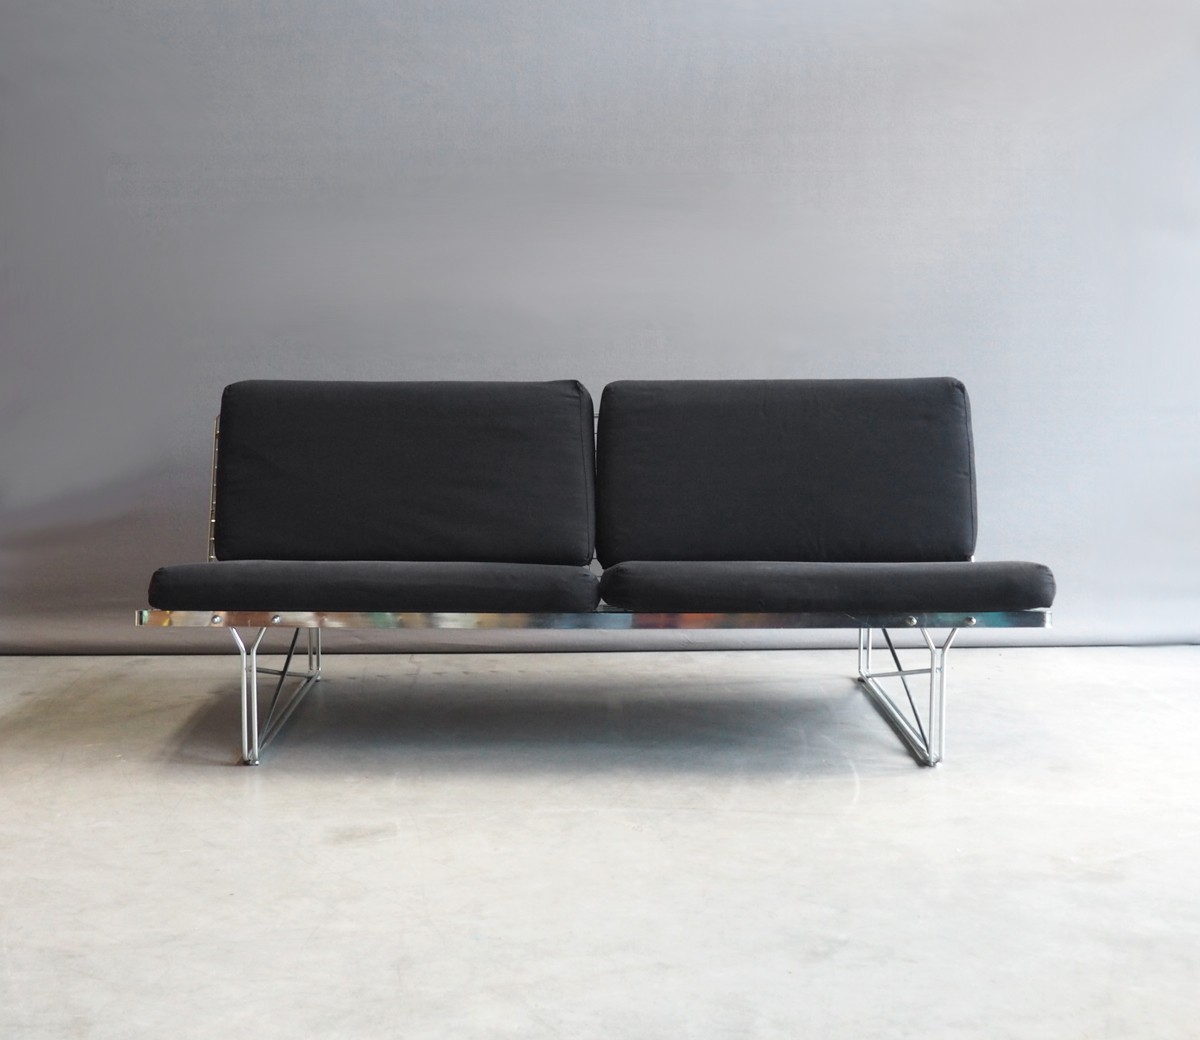 ikea moment sofa in fabric niels gammelgaard 1980s design market. Black Bedroom Furniture Sets. Home Design Ideas